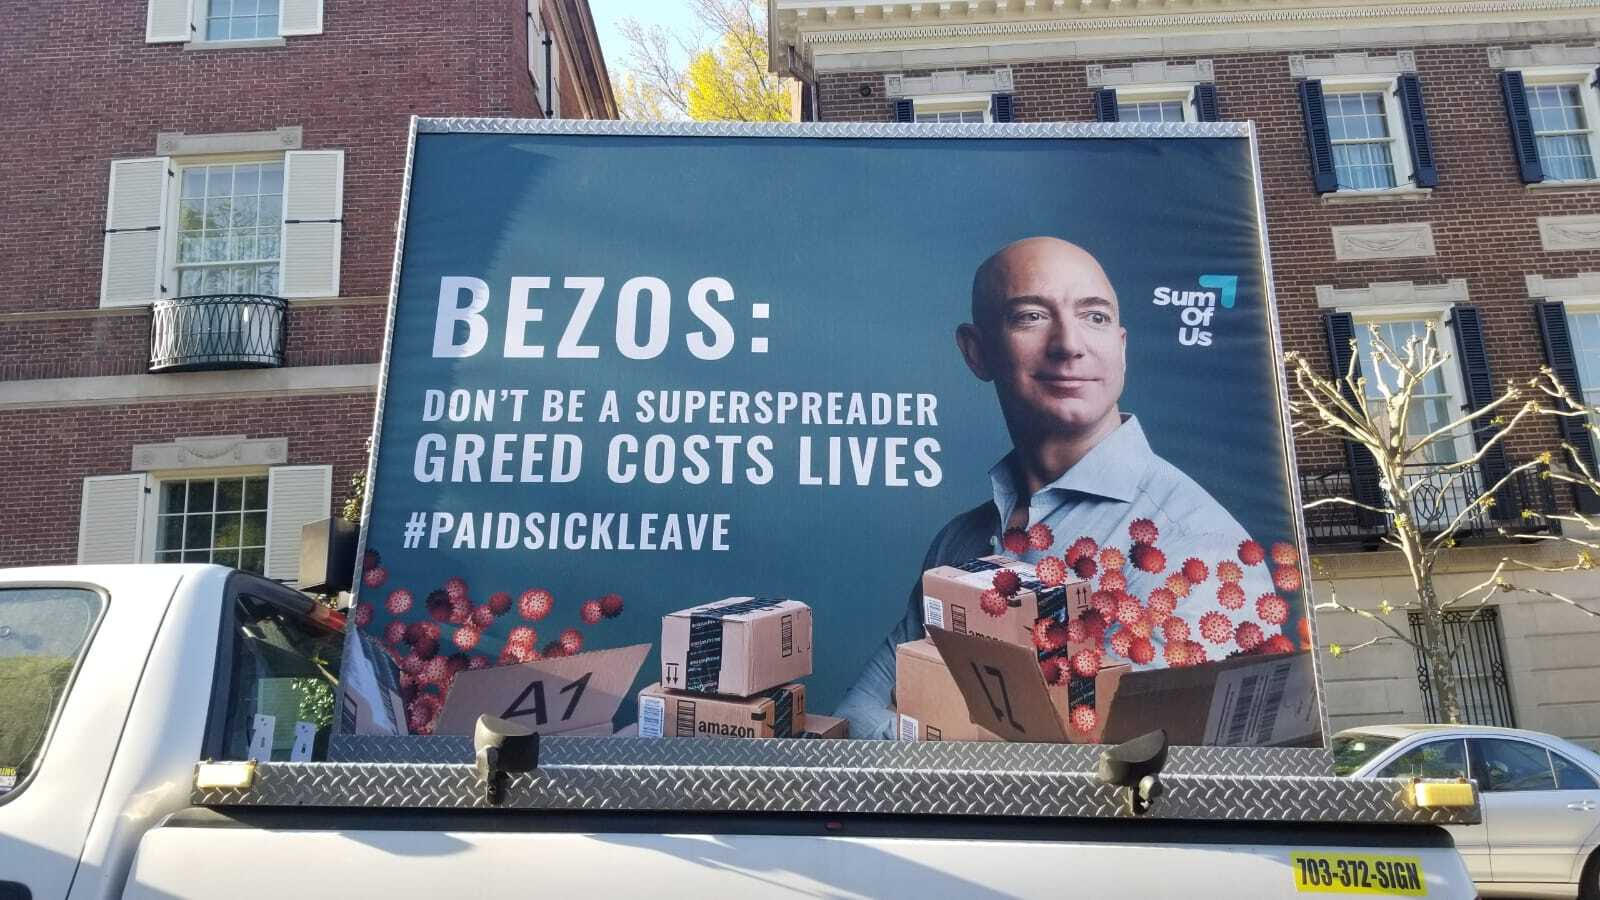 paid sick leave mobile billboard outside of Besoz house